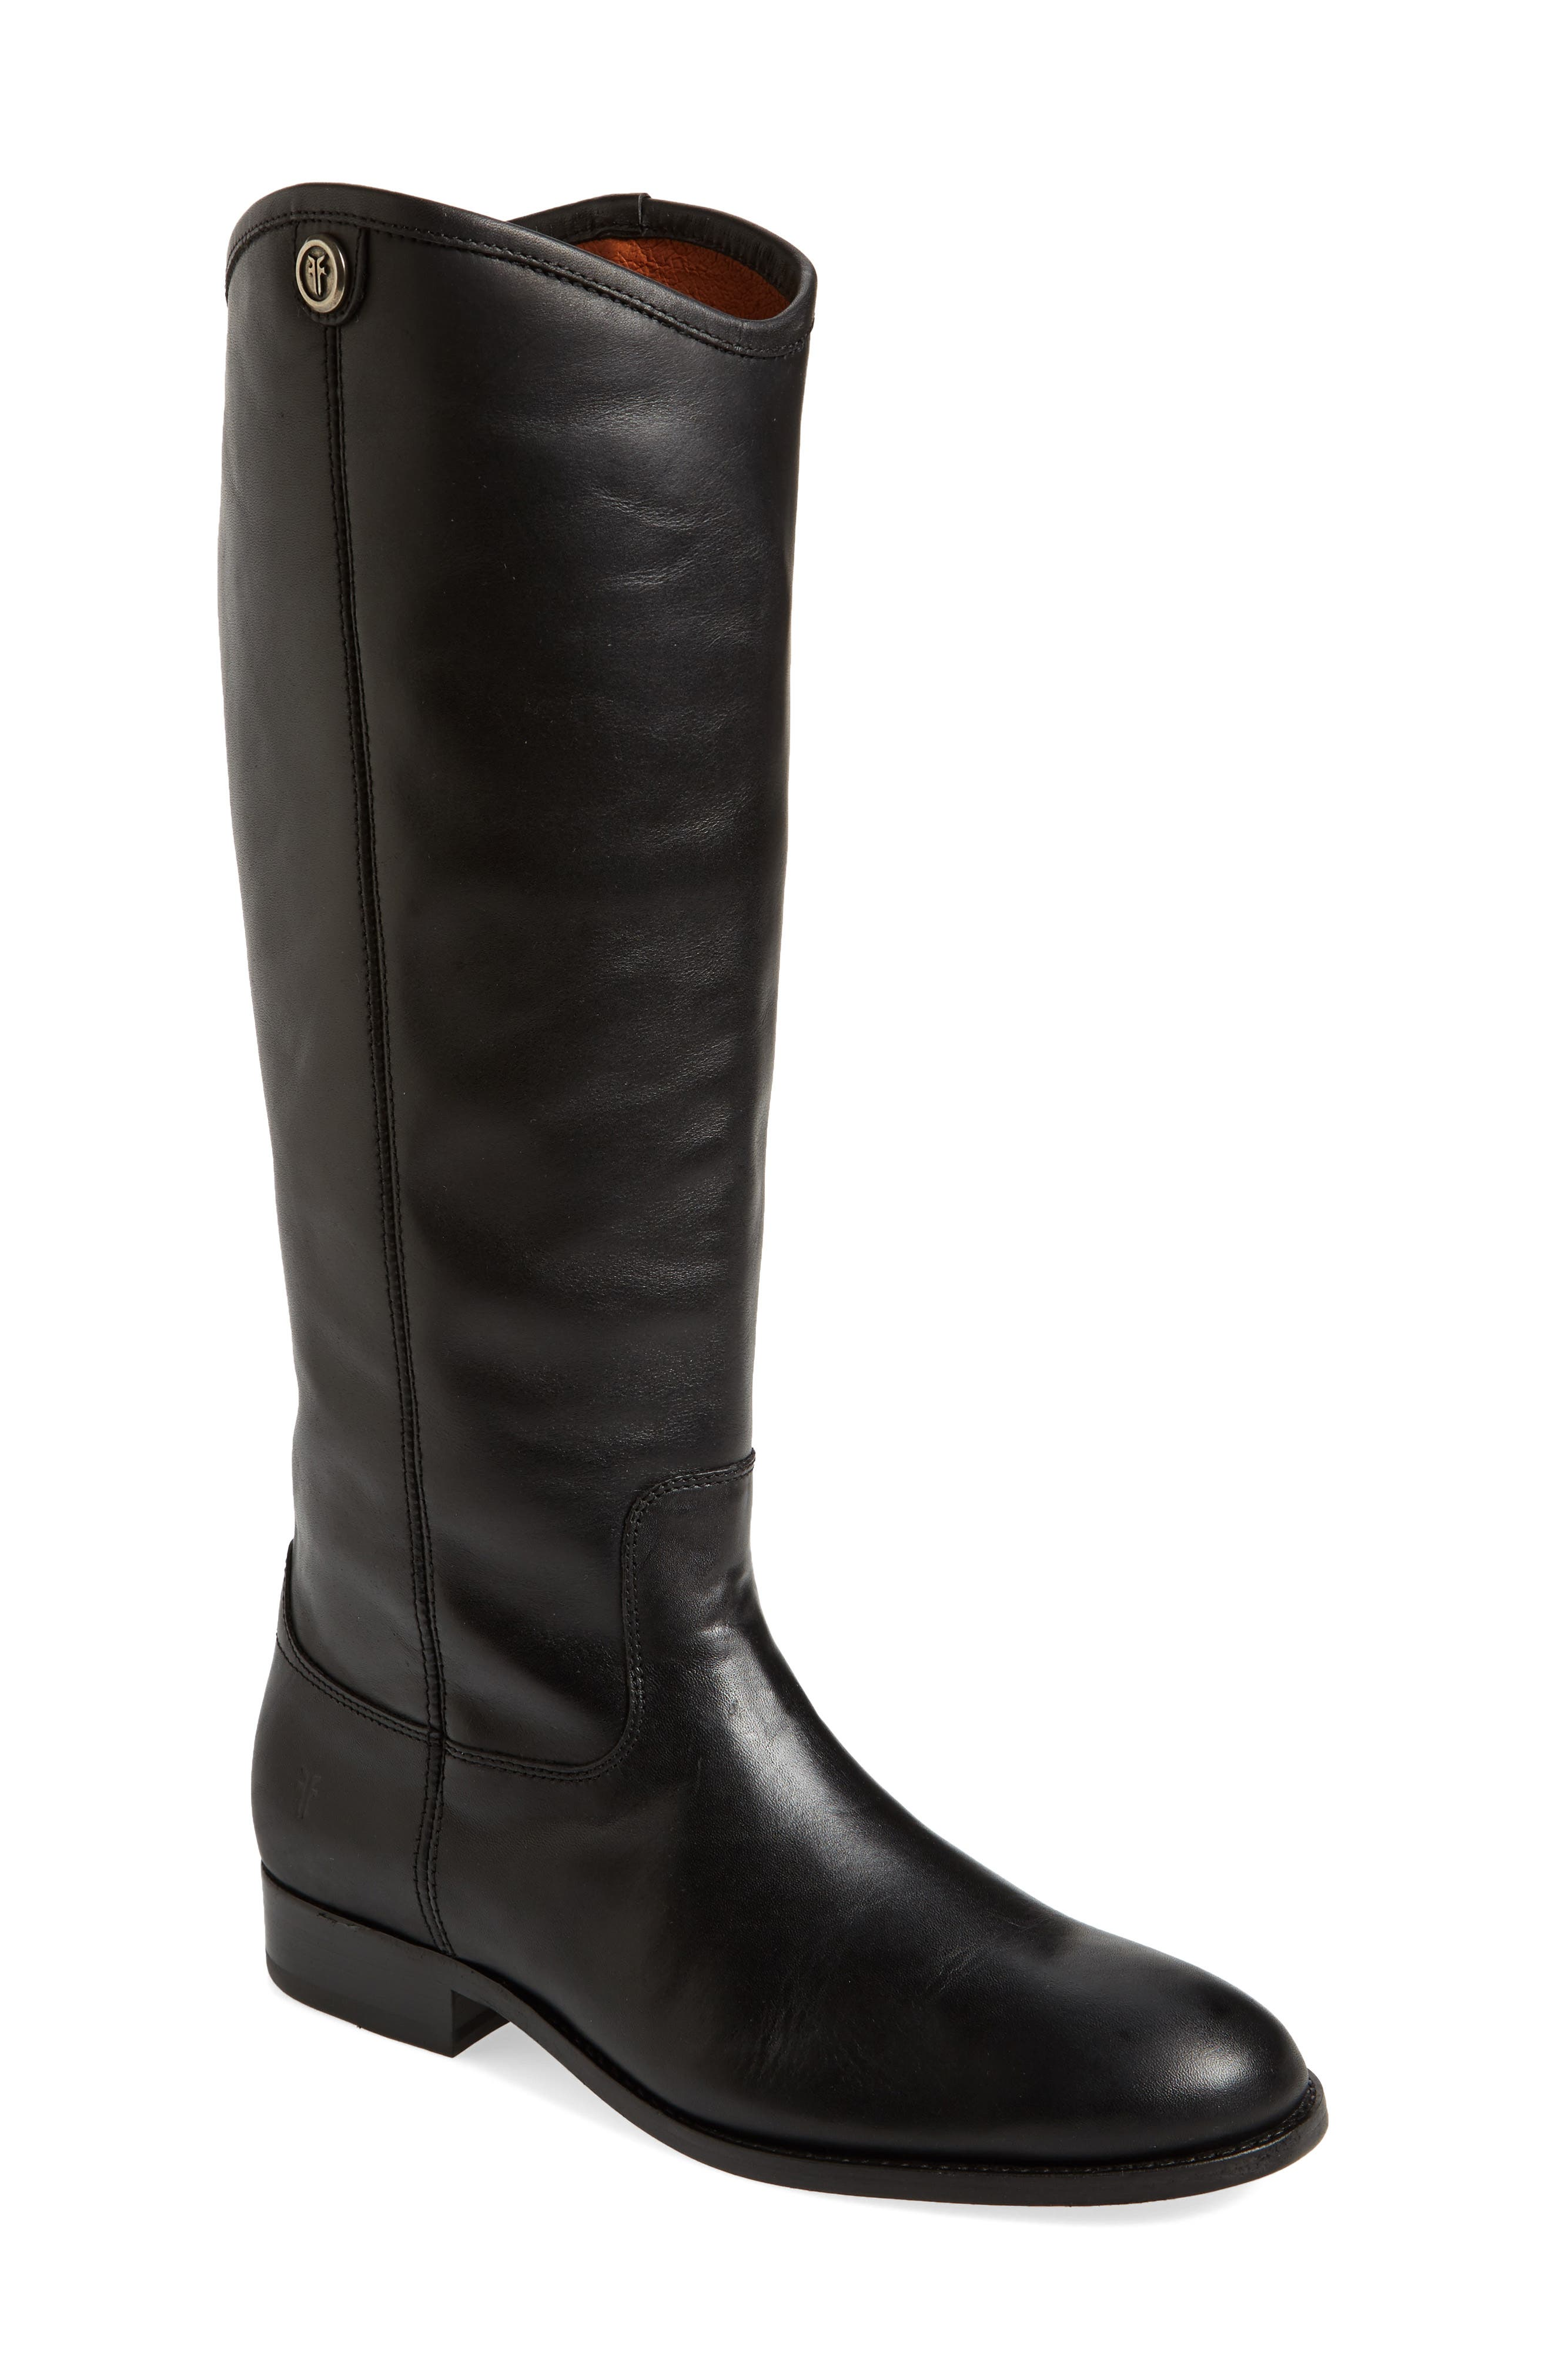 FRYE Melissa Button 2 Knee High Boot, Main, color, BLACK LEATHER